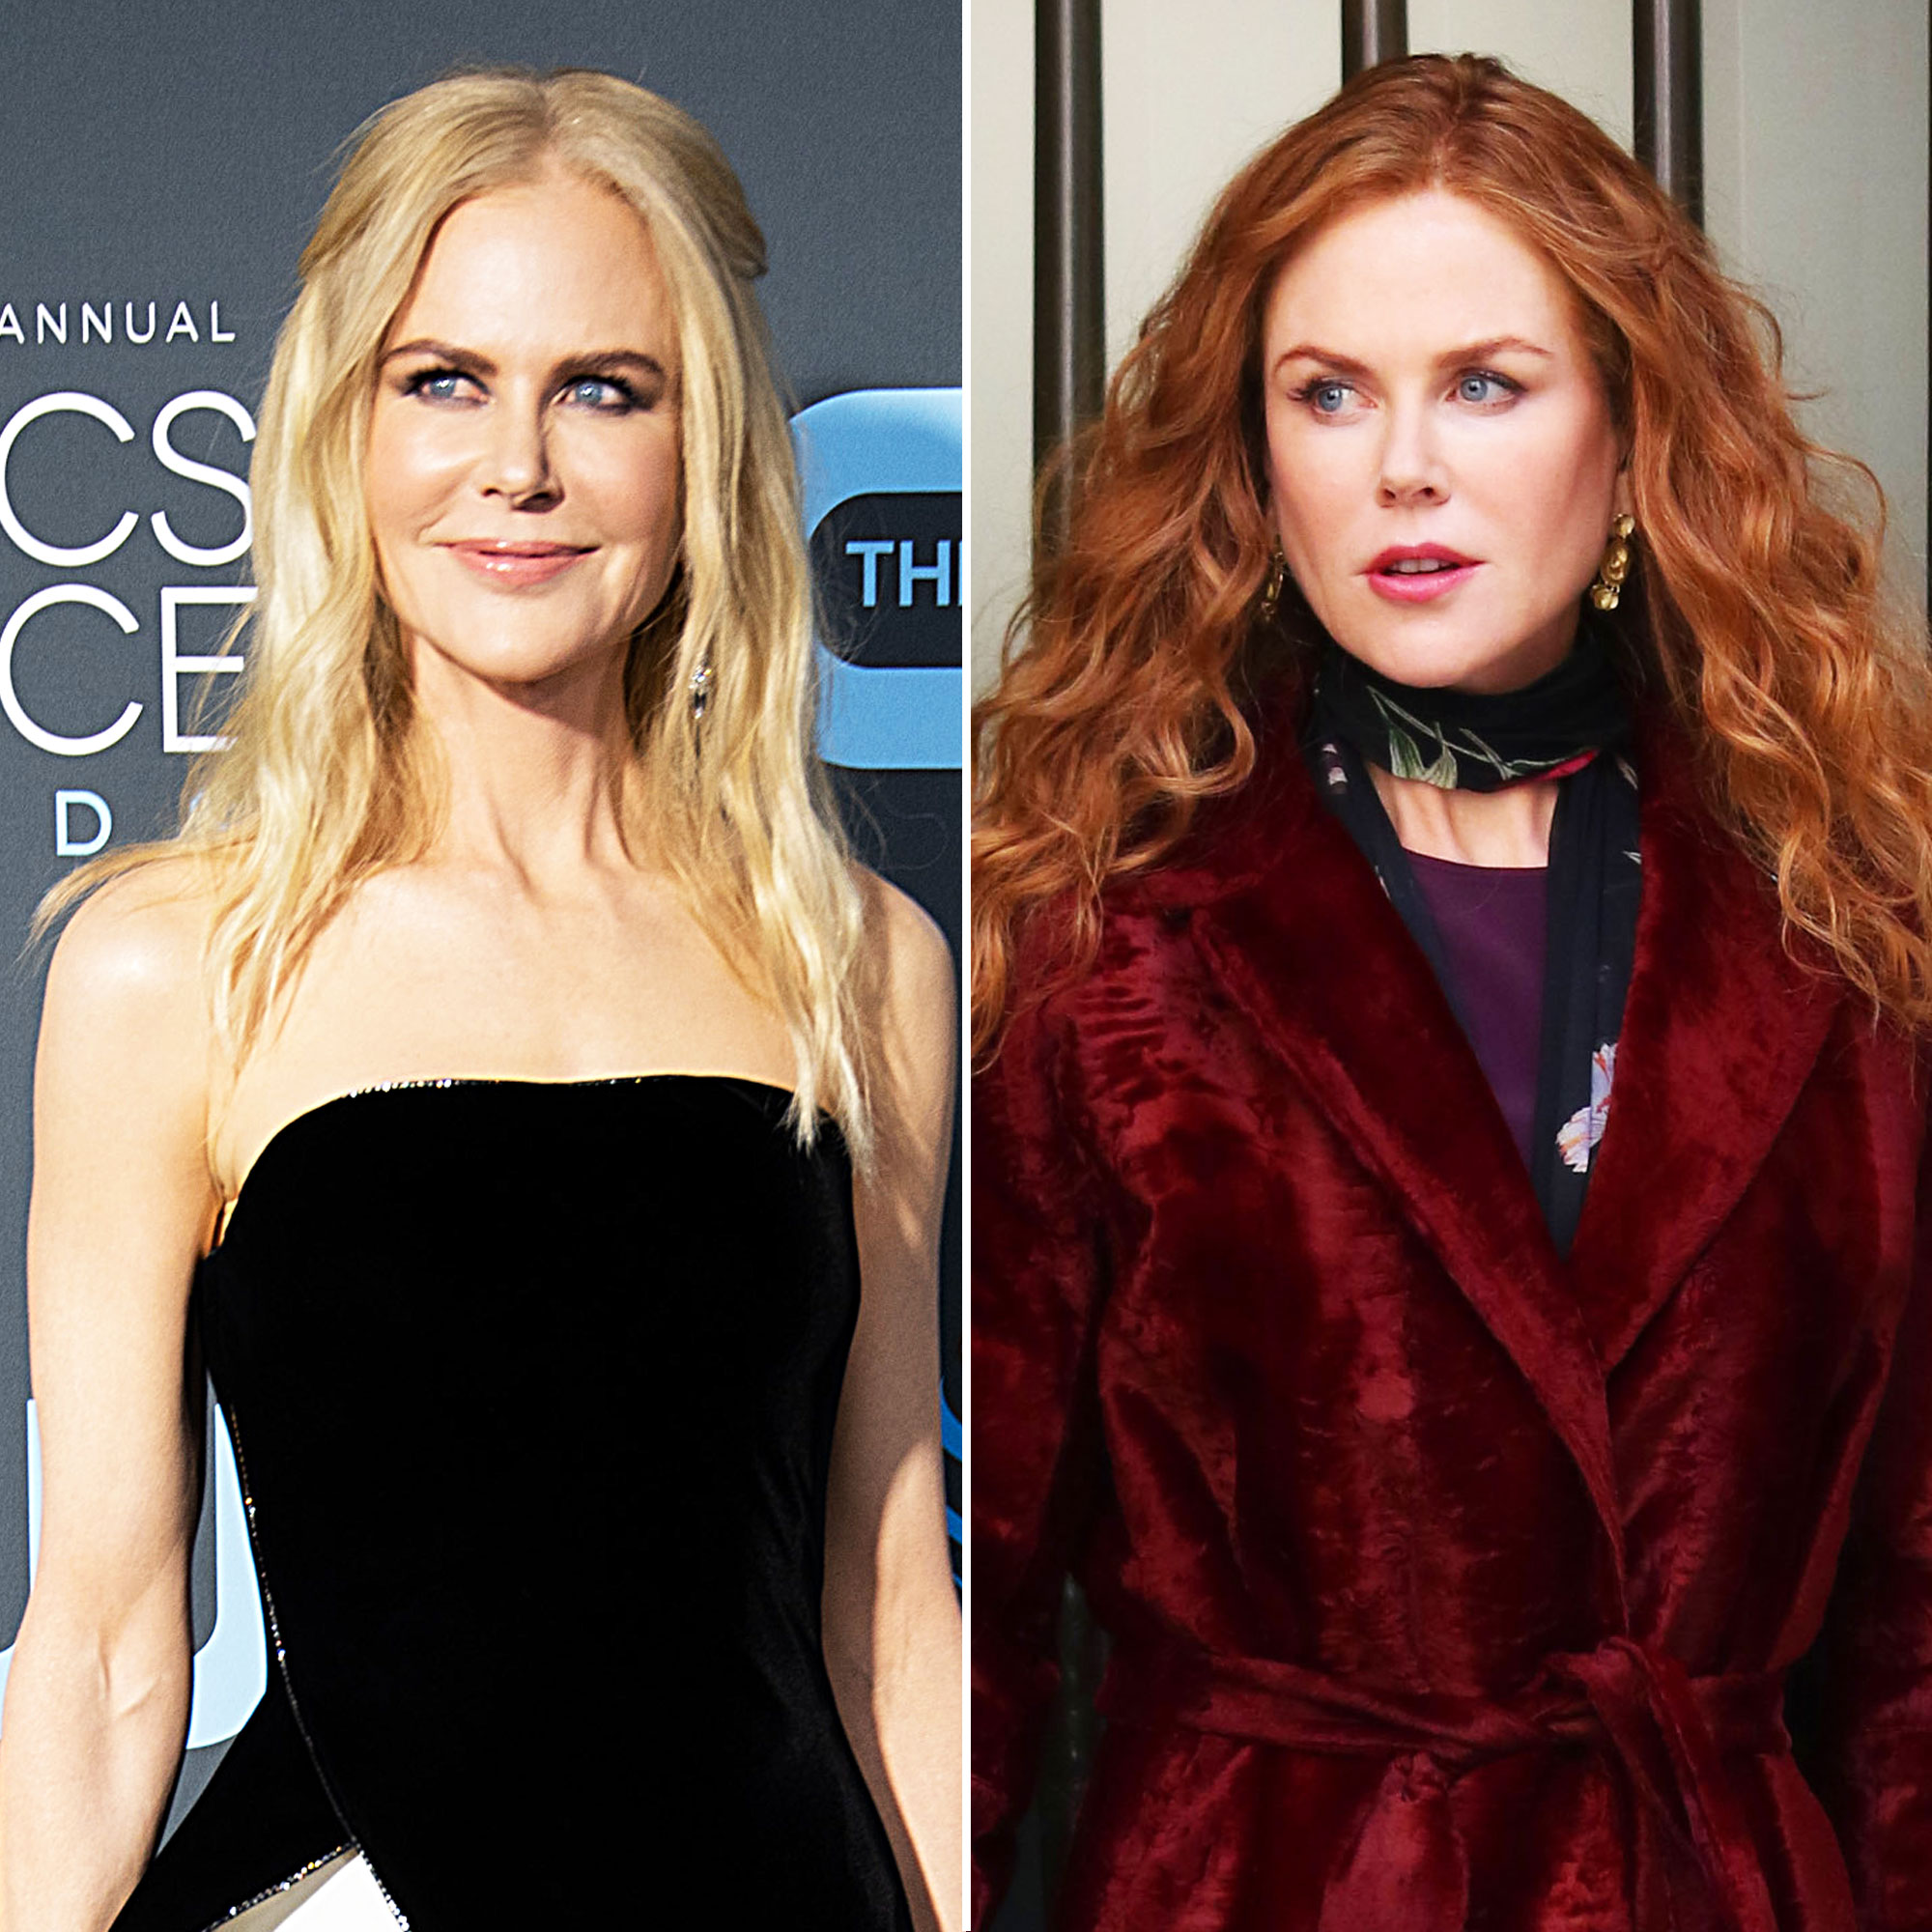 Nicole Kidman Goes Fire Engine Red, Plus Other Major Celeb Hair Changes - Returning to her darker roots, the Big Little Lies star was spotted filming The Undoing in New York City on March 14 with a fresh shade of red worn in long wavy locks.